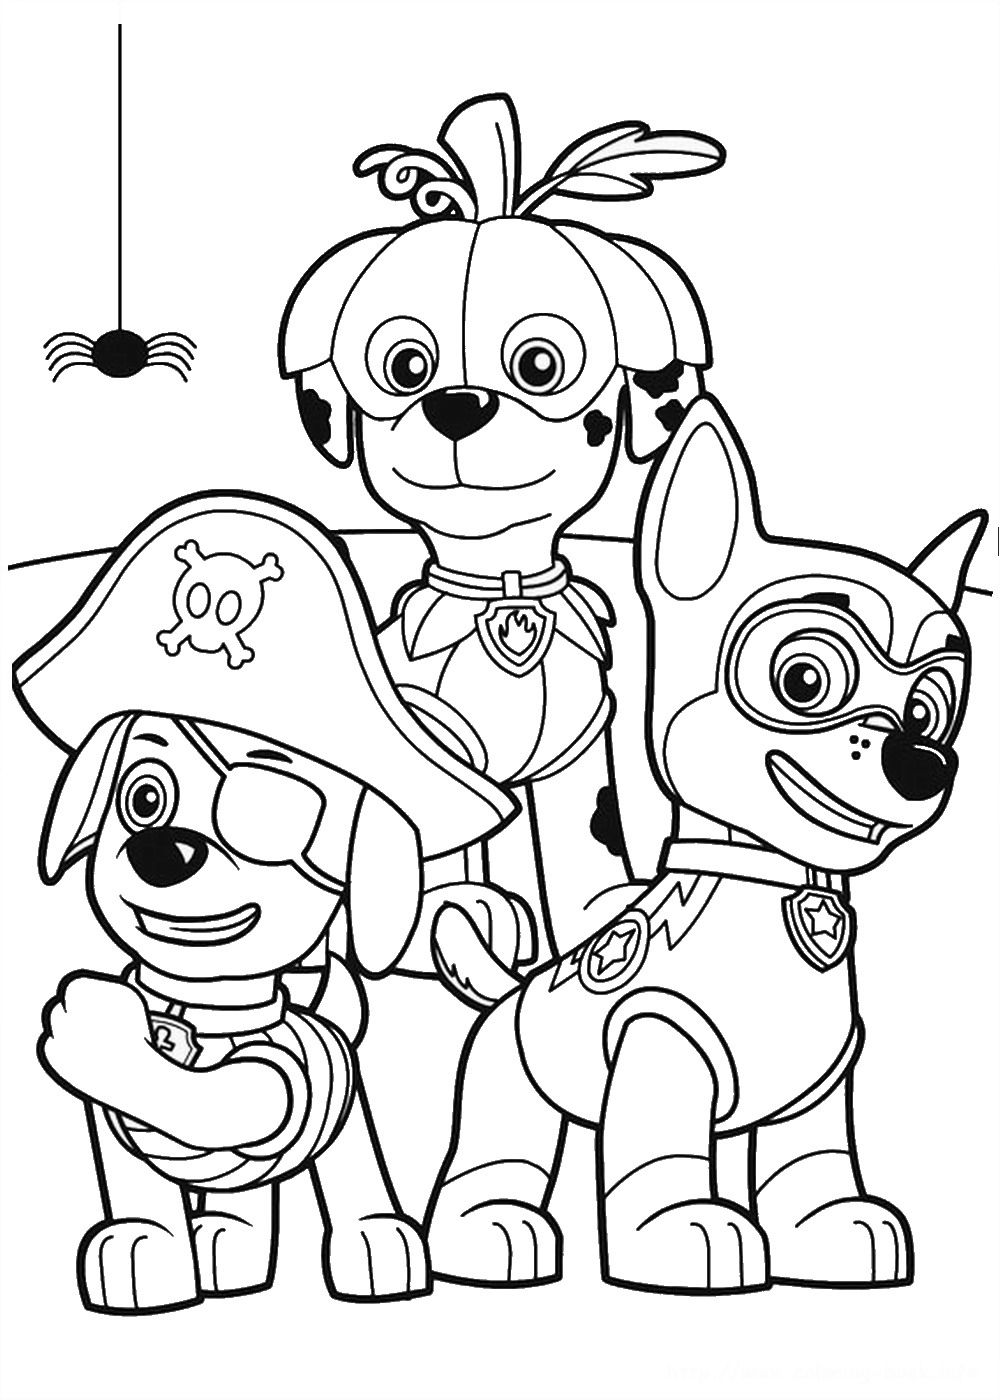 paw_patrol_coloring_page_21 Halloween Pinterest Paw